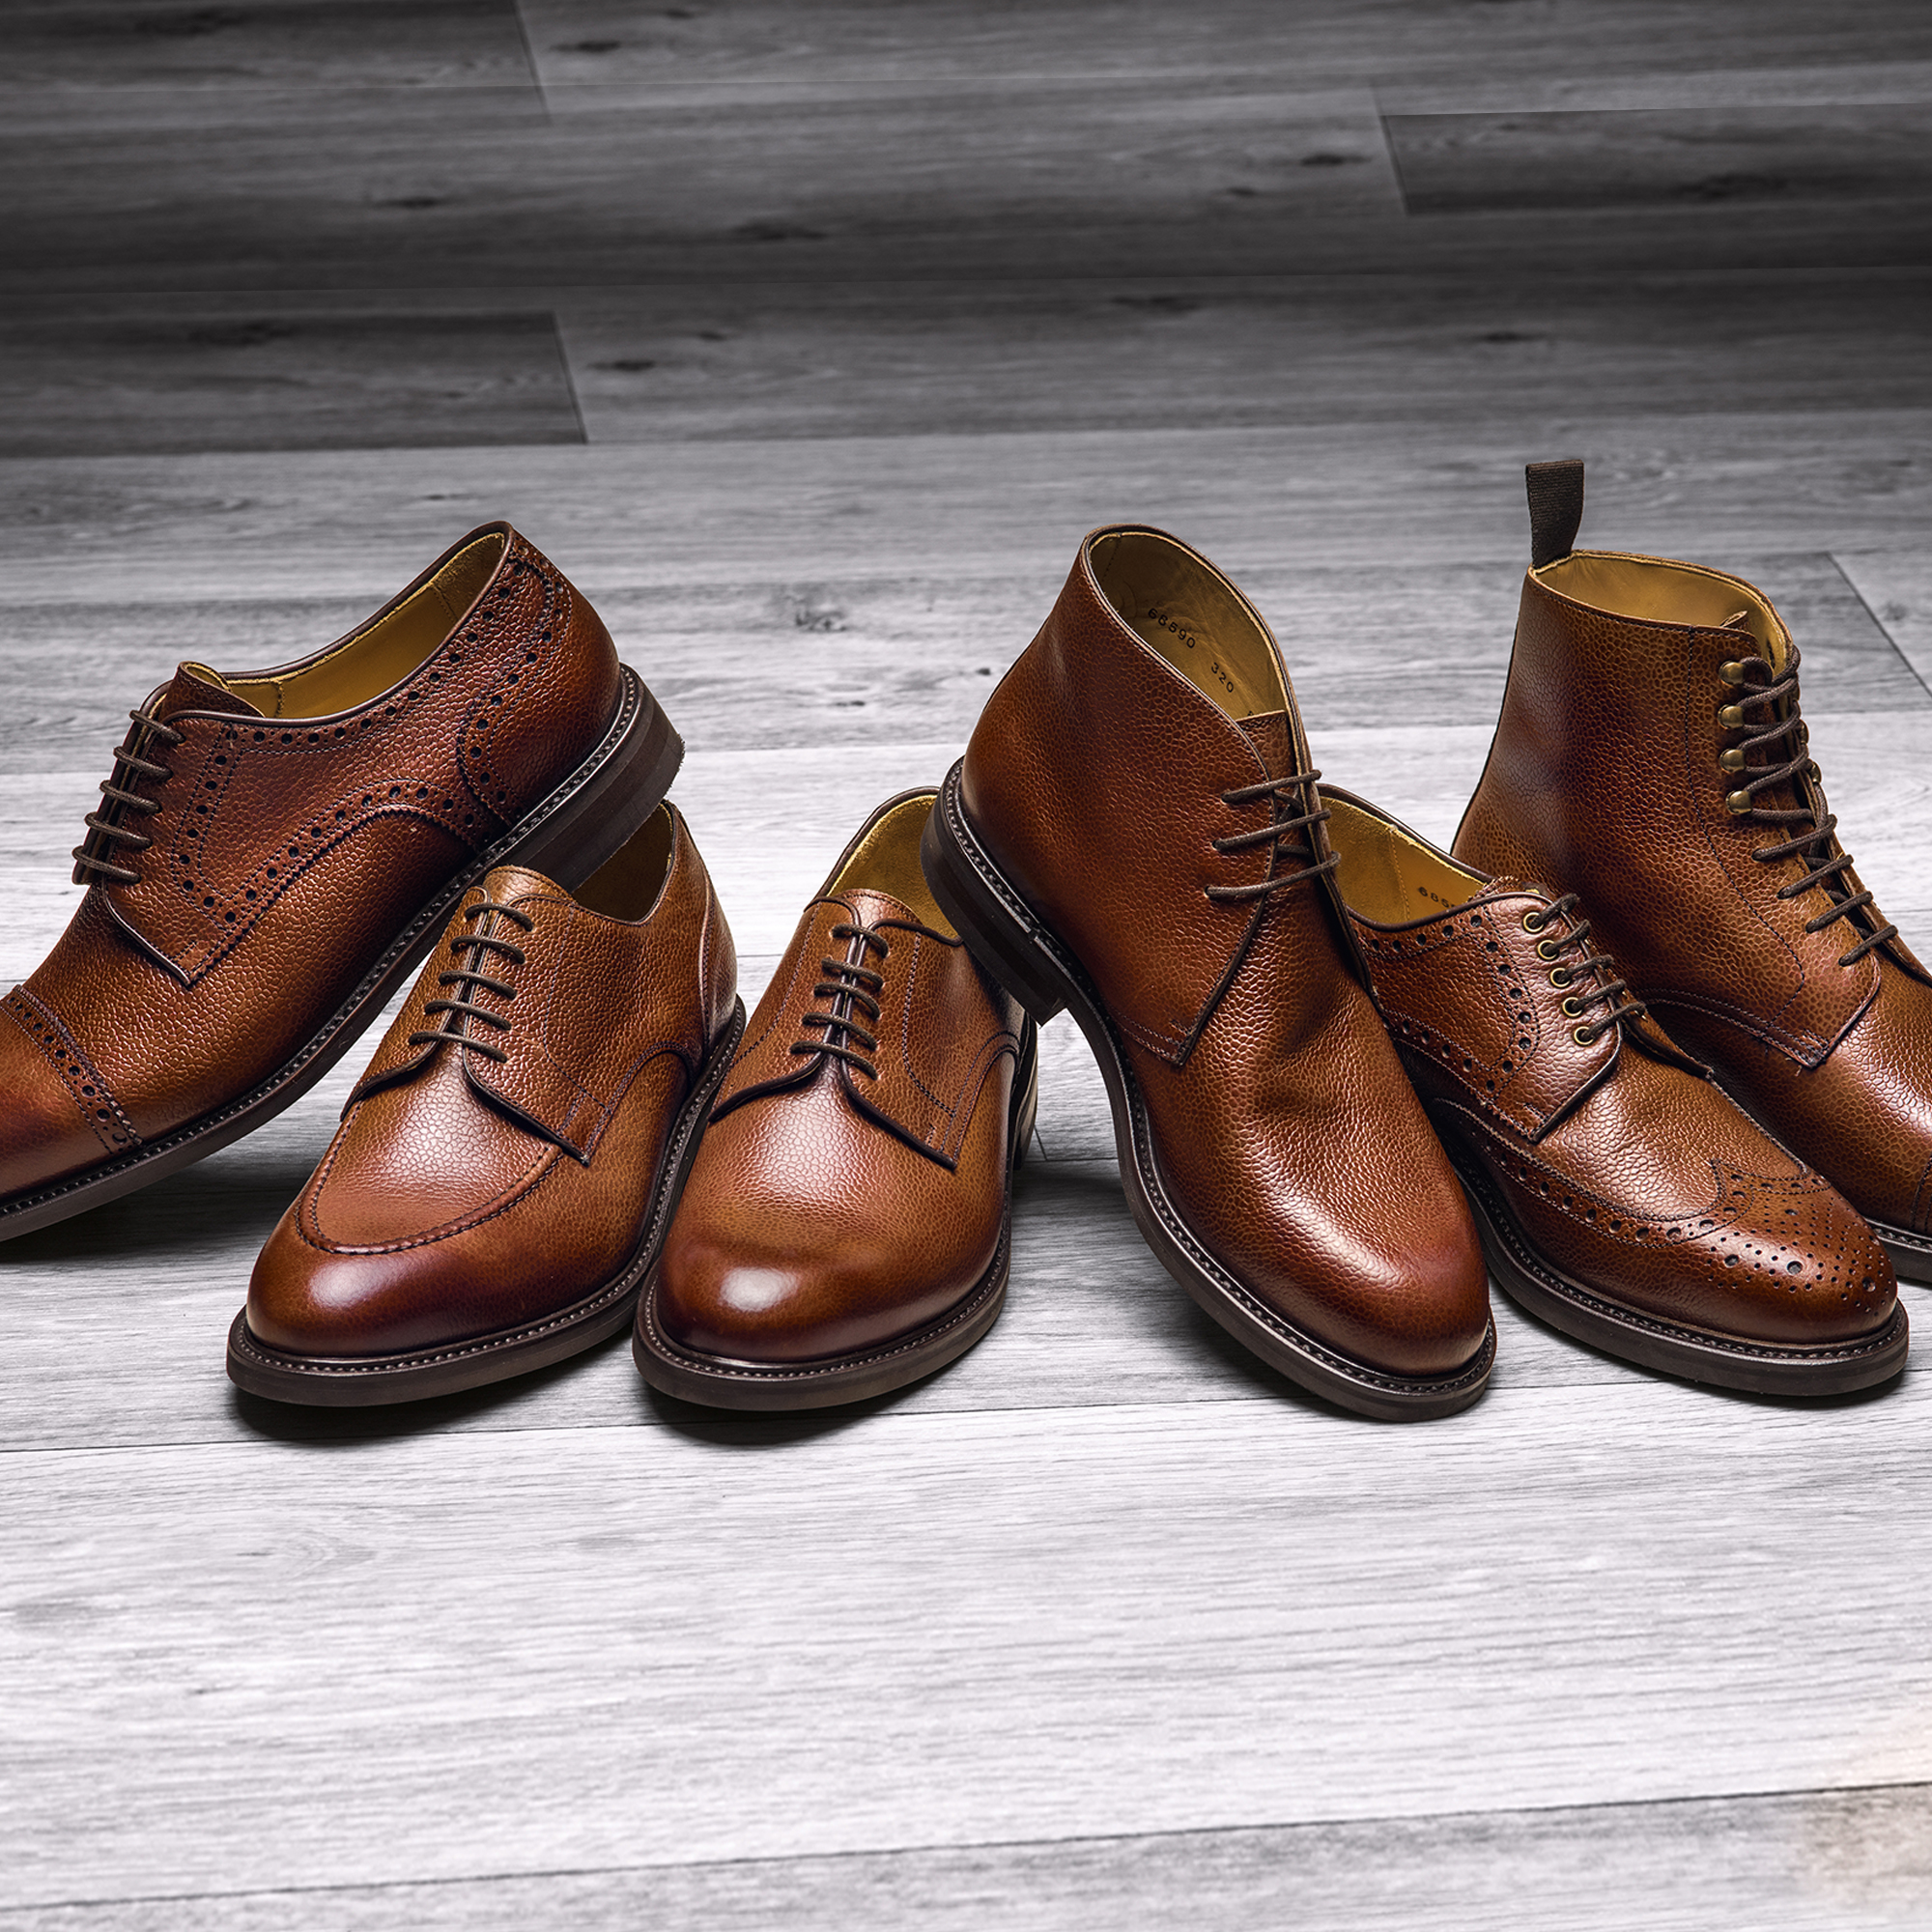 Leather Footwear Styles